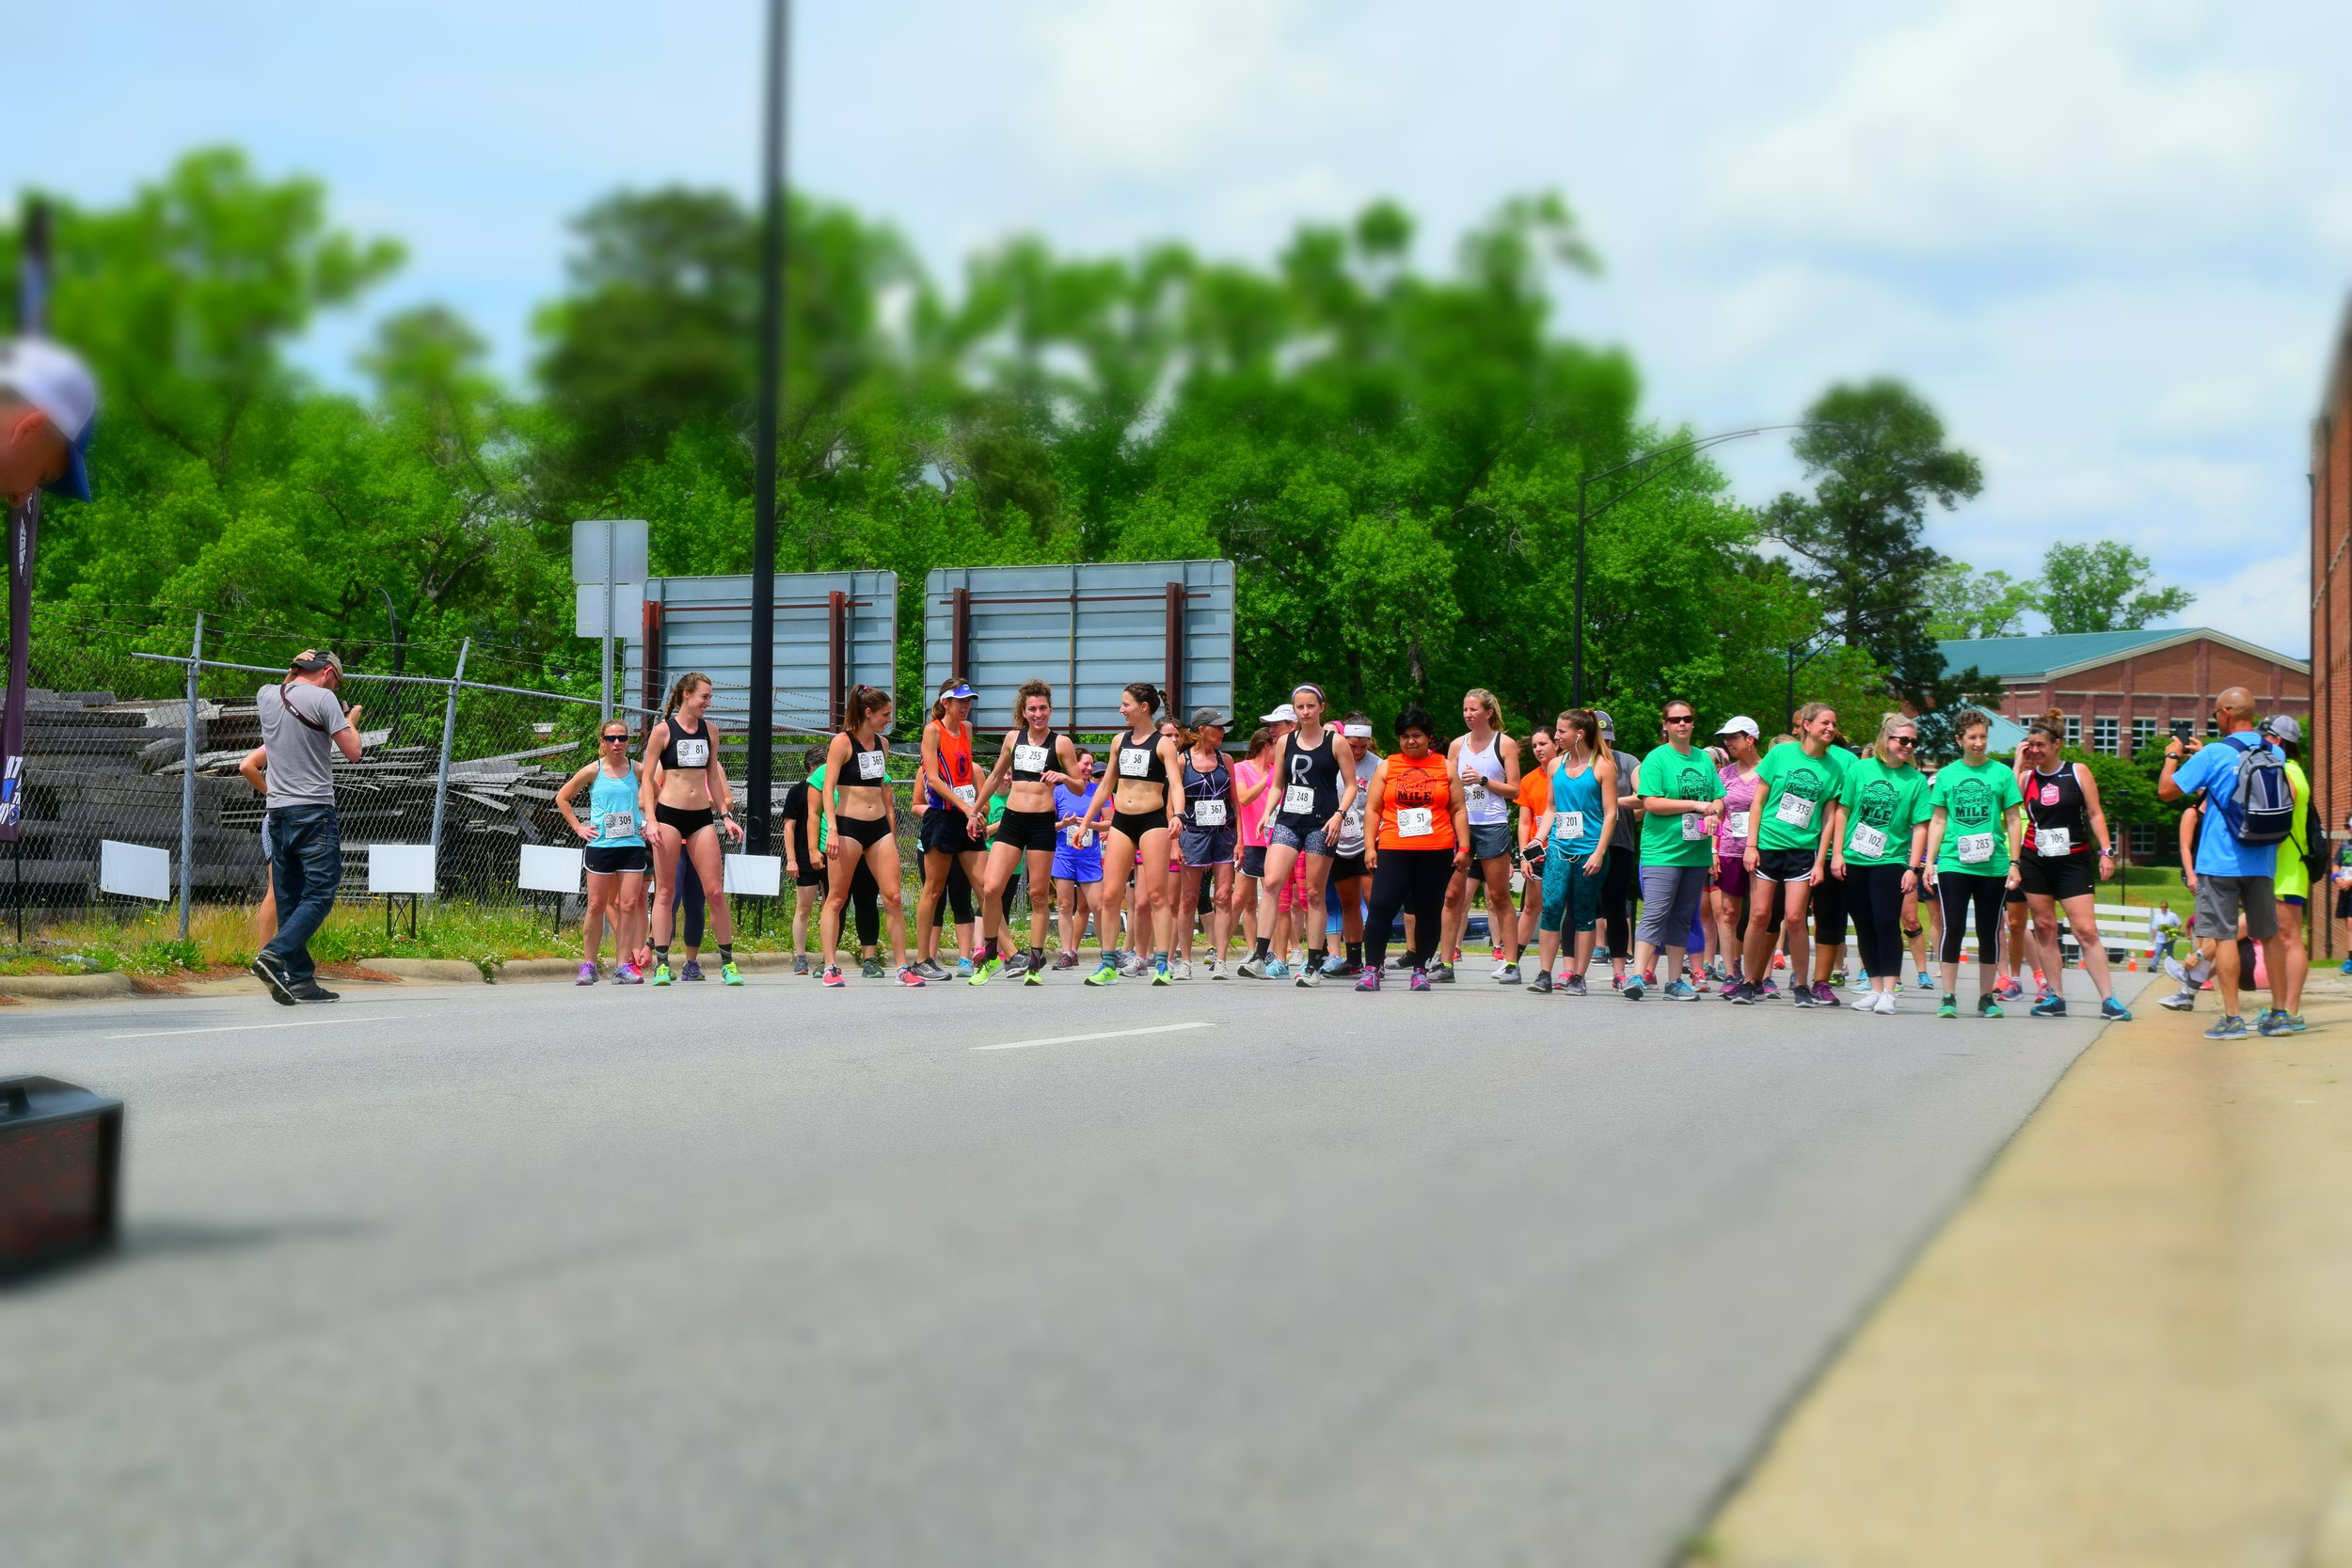 Keeping things fun at the starting line!